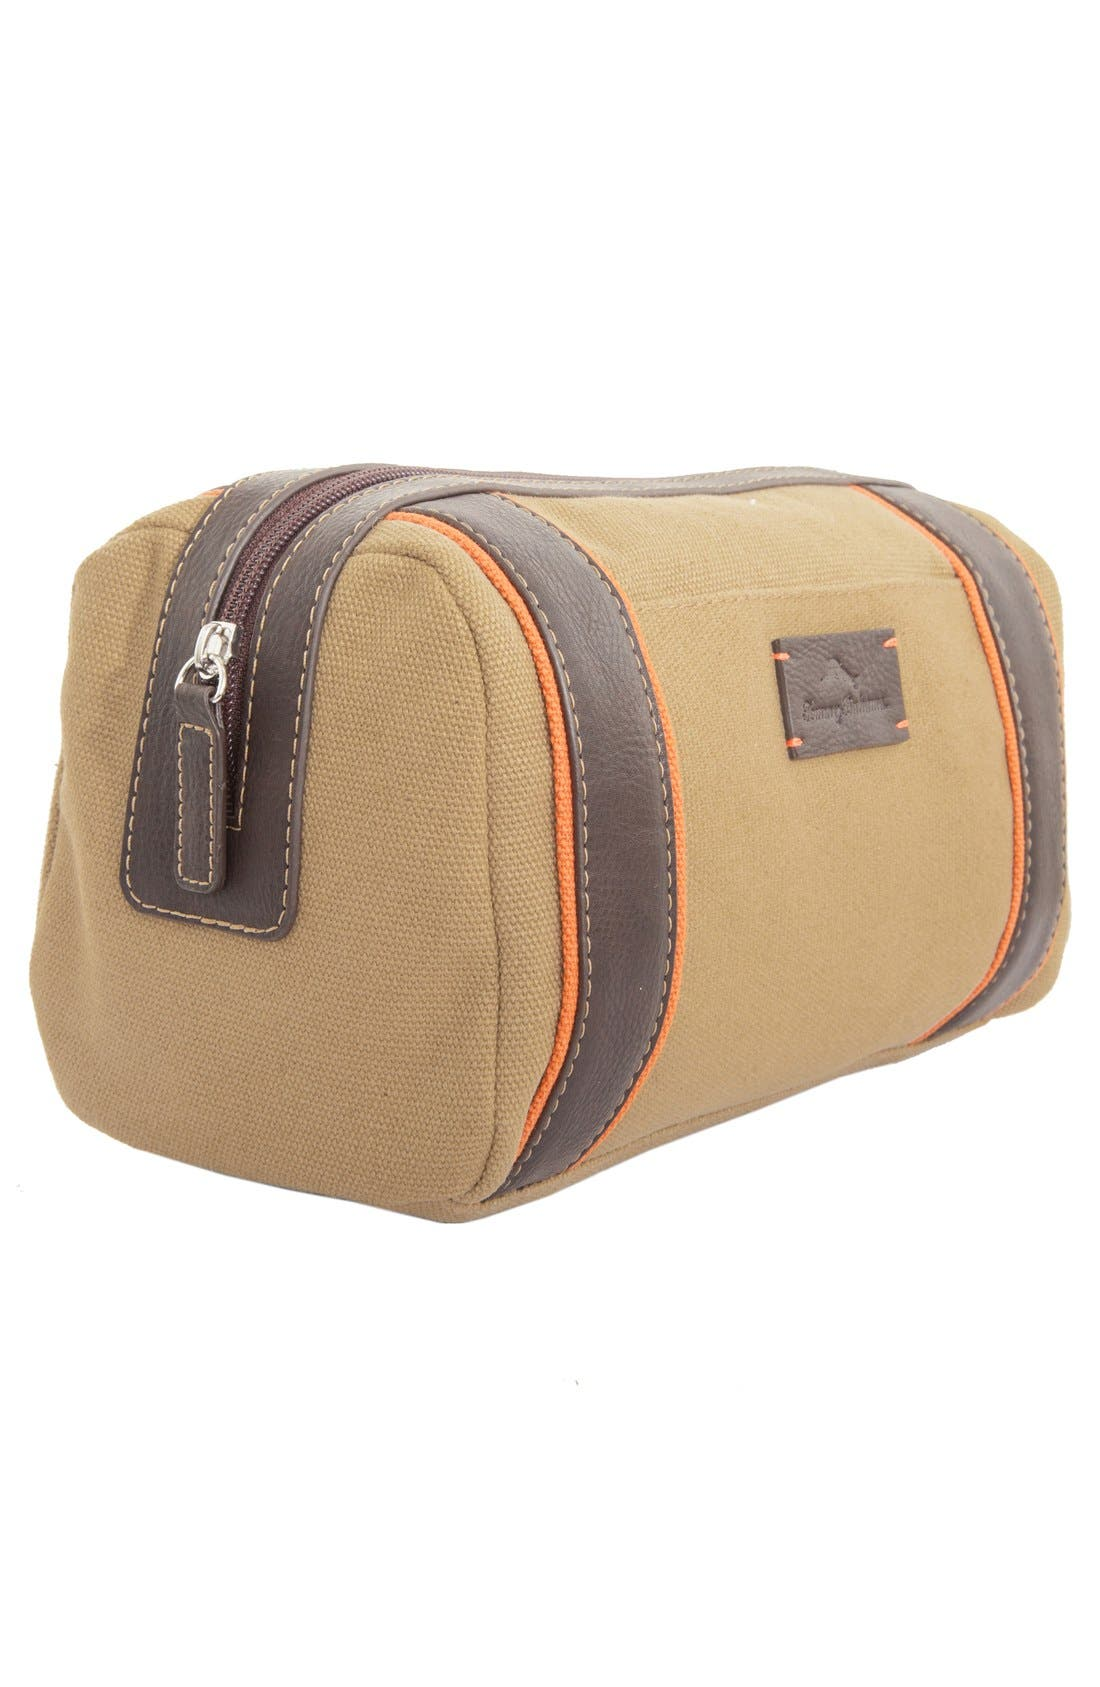 Canvas Dopp Kit,                             Alternate thumbnail 2, color,                             260